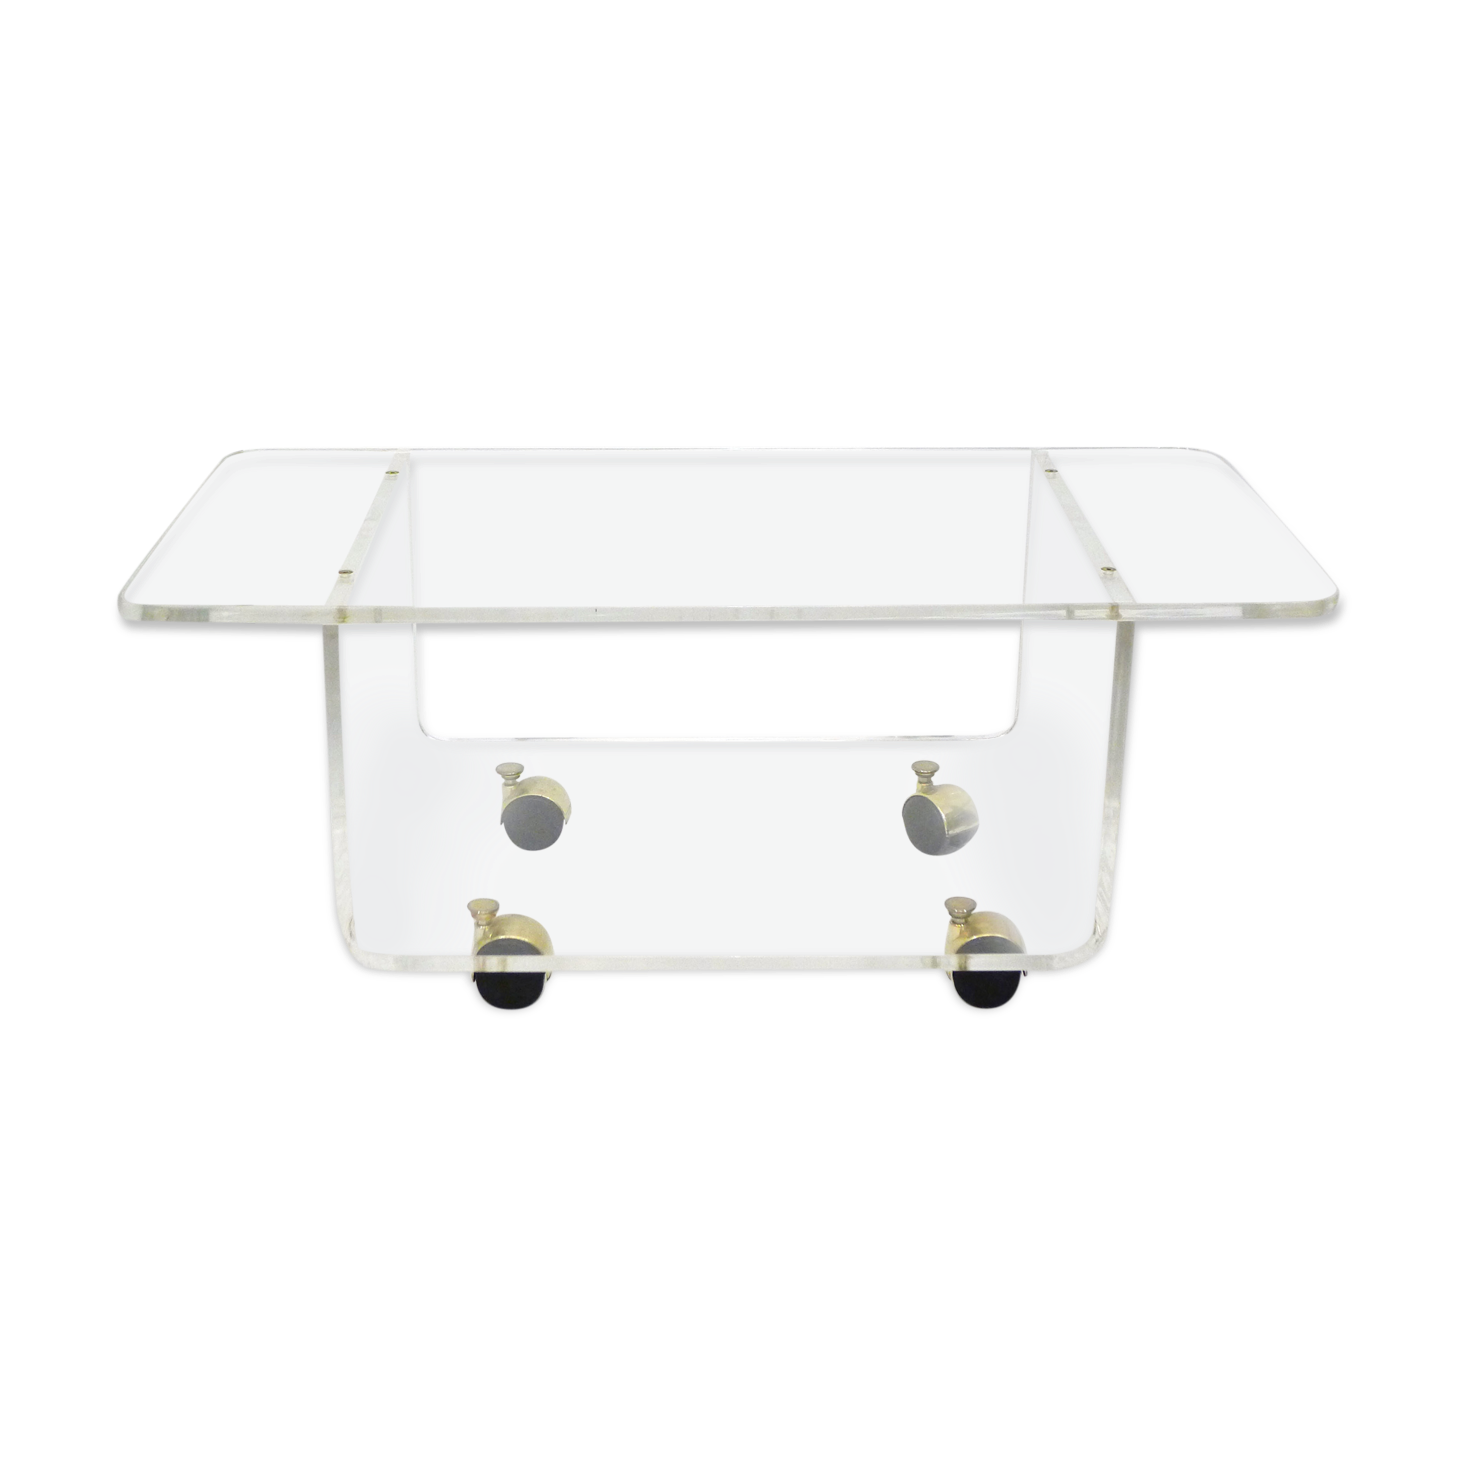 Fimel Table Basse Dexposition En Plexiglas Transparent L X P X H 280 X 100 X 210 Mm Tables Ameublement Et Decoration